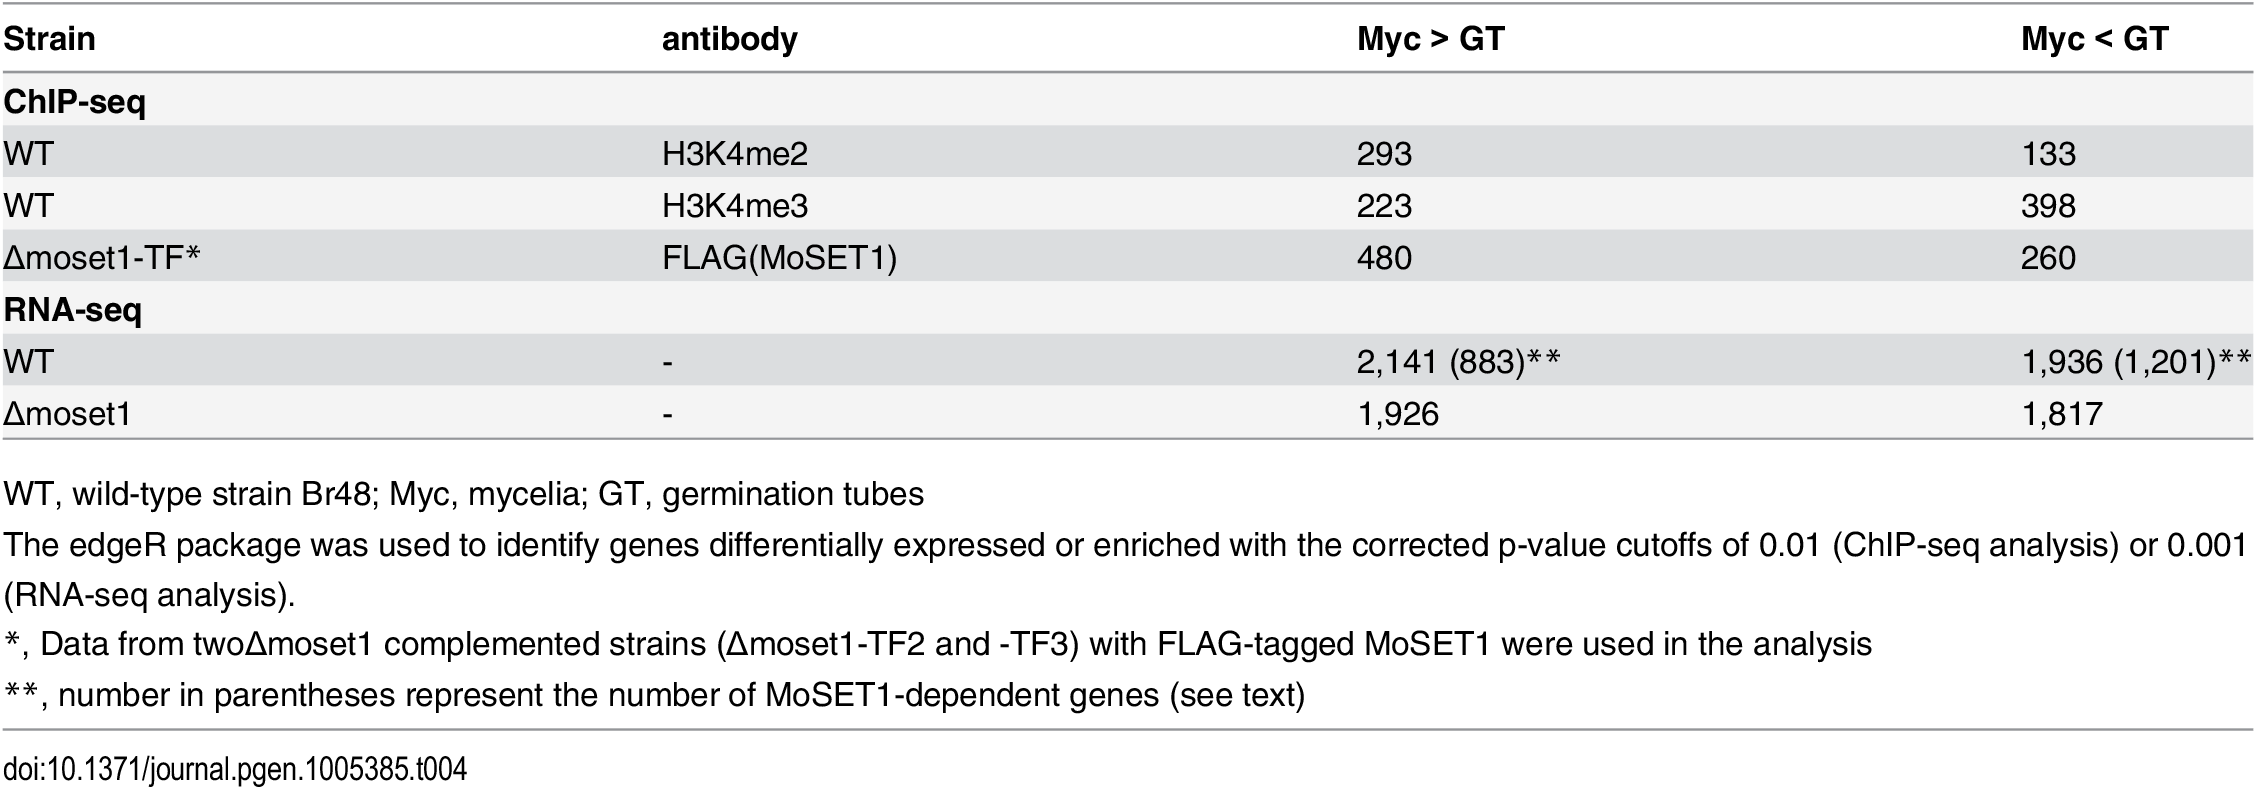 Number of genes differentially enriched for H3K4me2/H3K4me3 in ChIP-seq analysis and differentially expressed in RNA-seq analysis between mycelia and germination tubes.